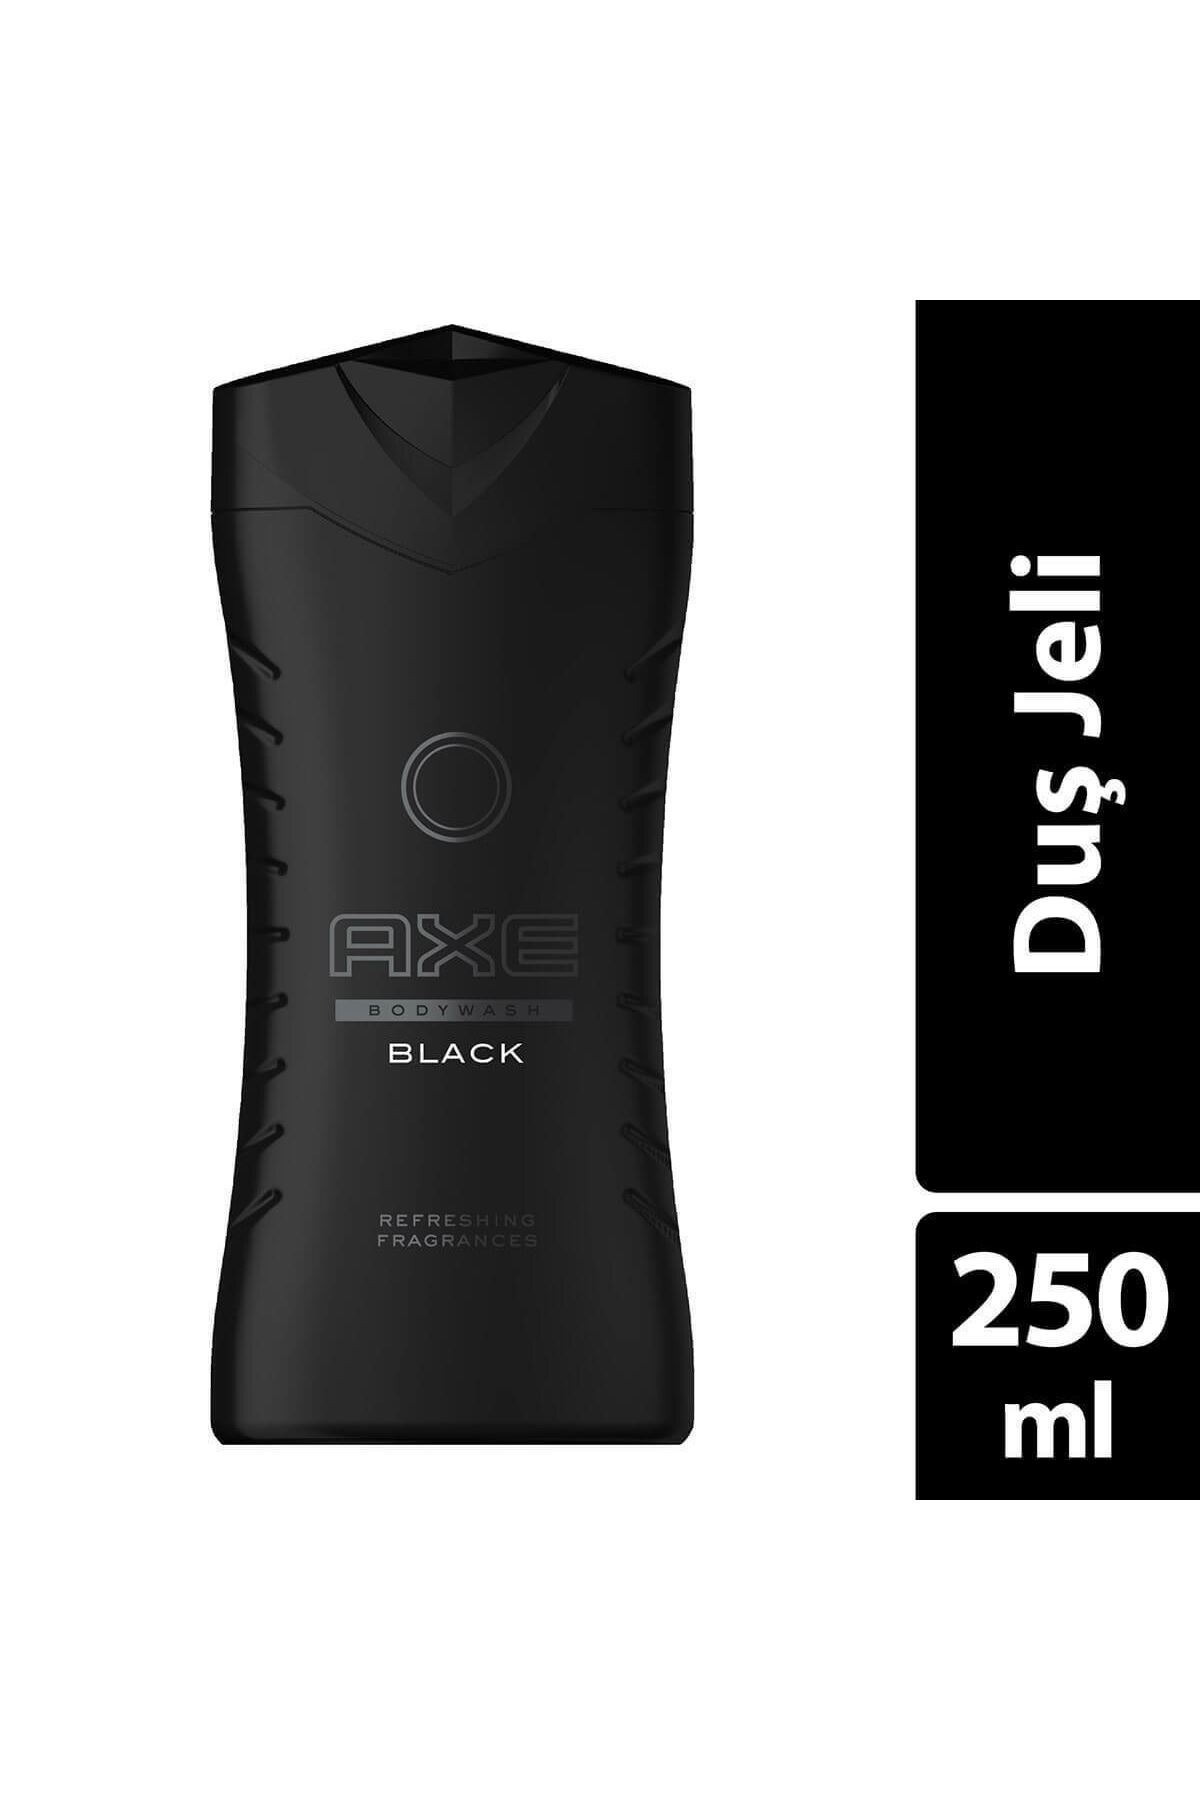 Axe Black Duş Jeli 250 ml